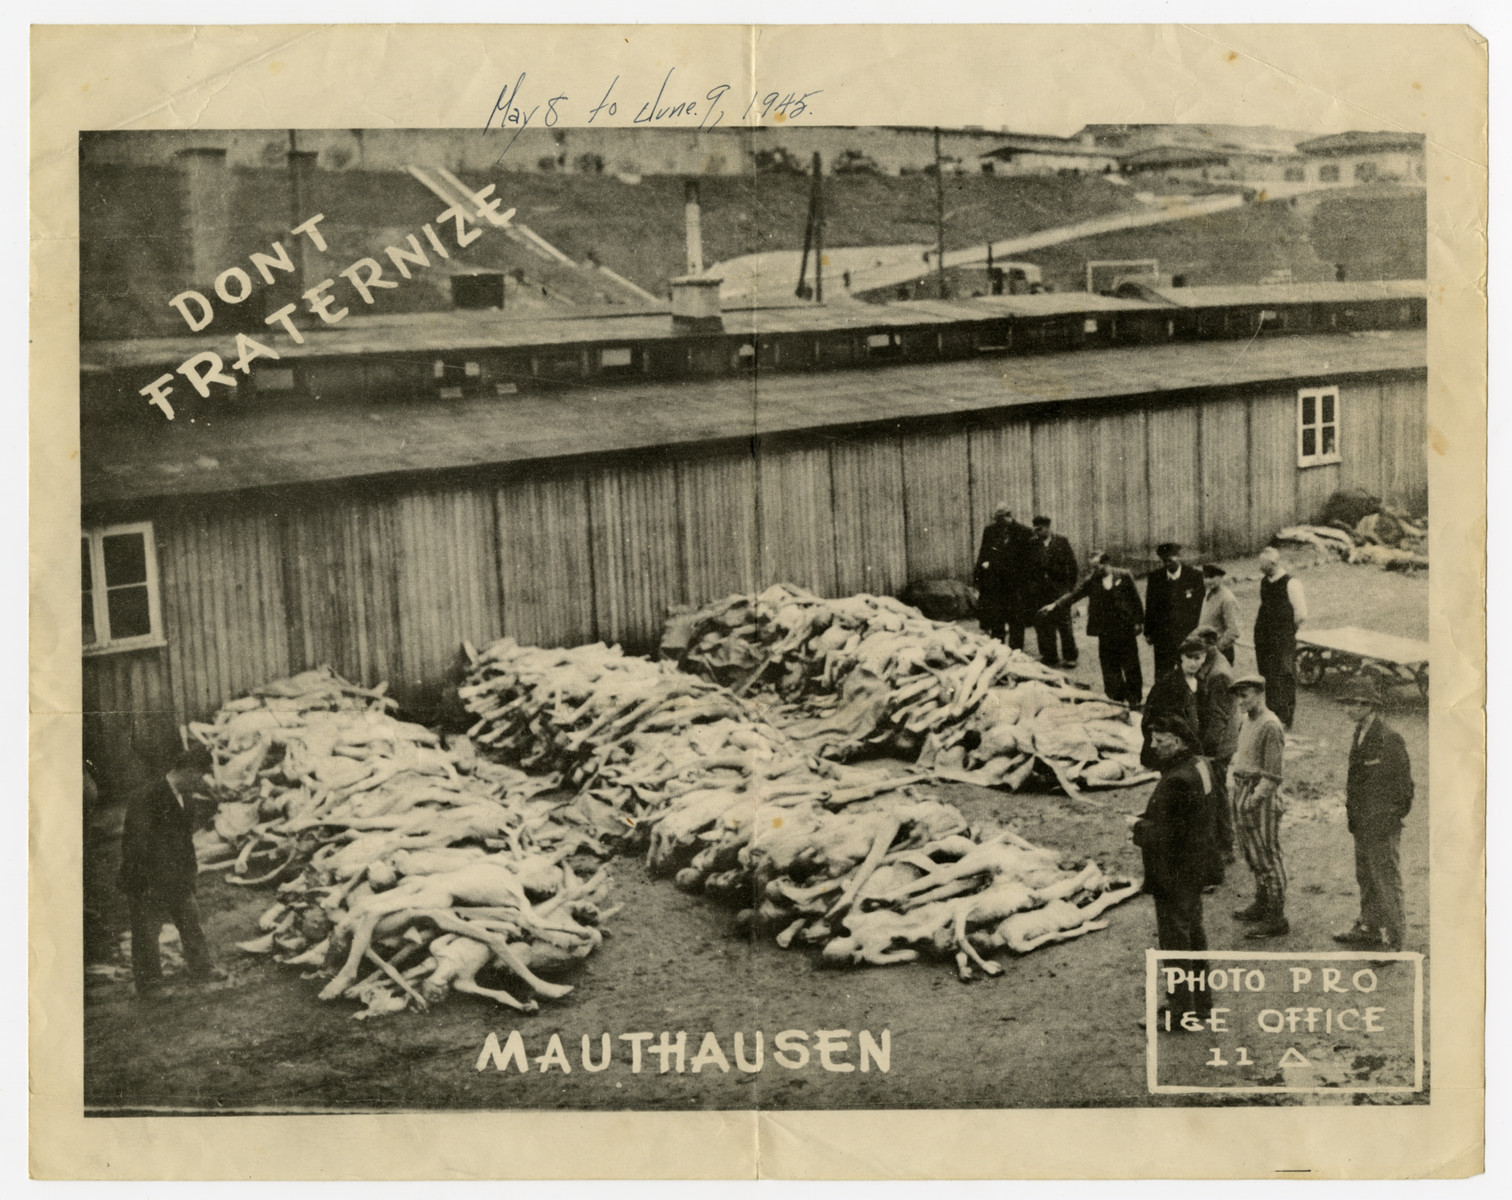 Handbill issued by the U.S. Army which uses an image of concentration camp victims at Mauthausen to remind soldiers not to fraternize with German civilians.